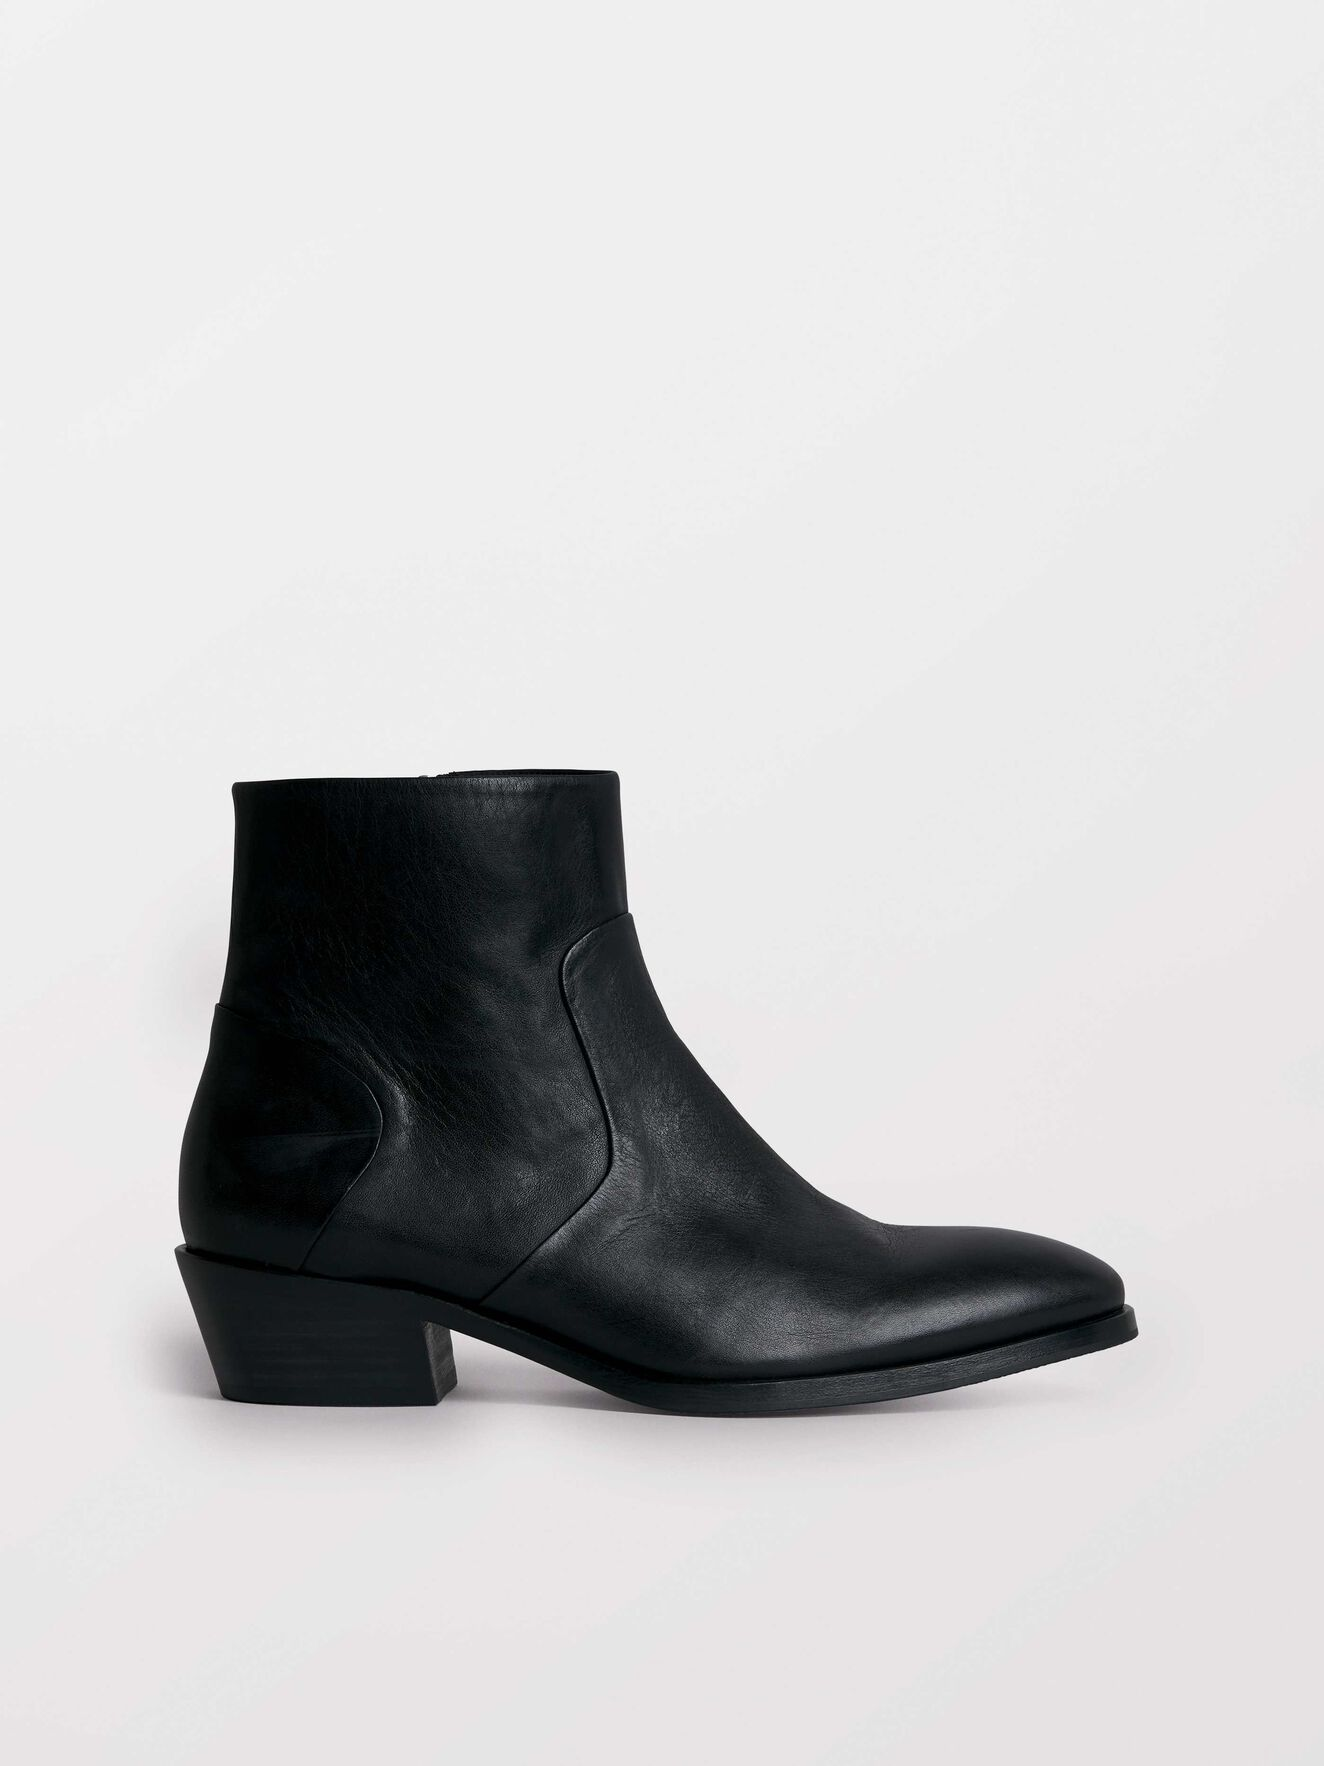 Ziggy Boots in Black from Tiger of Sweden